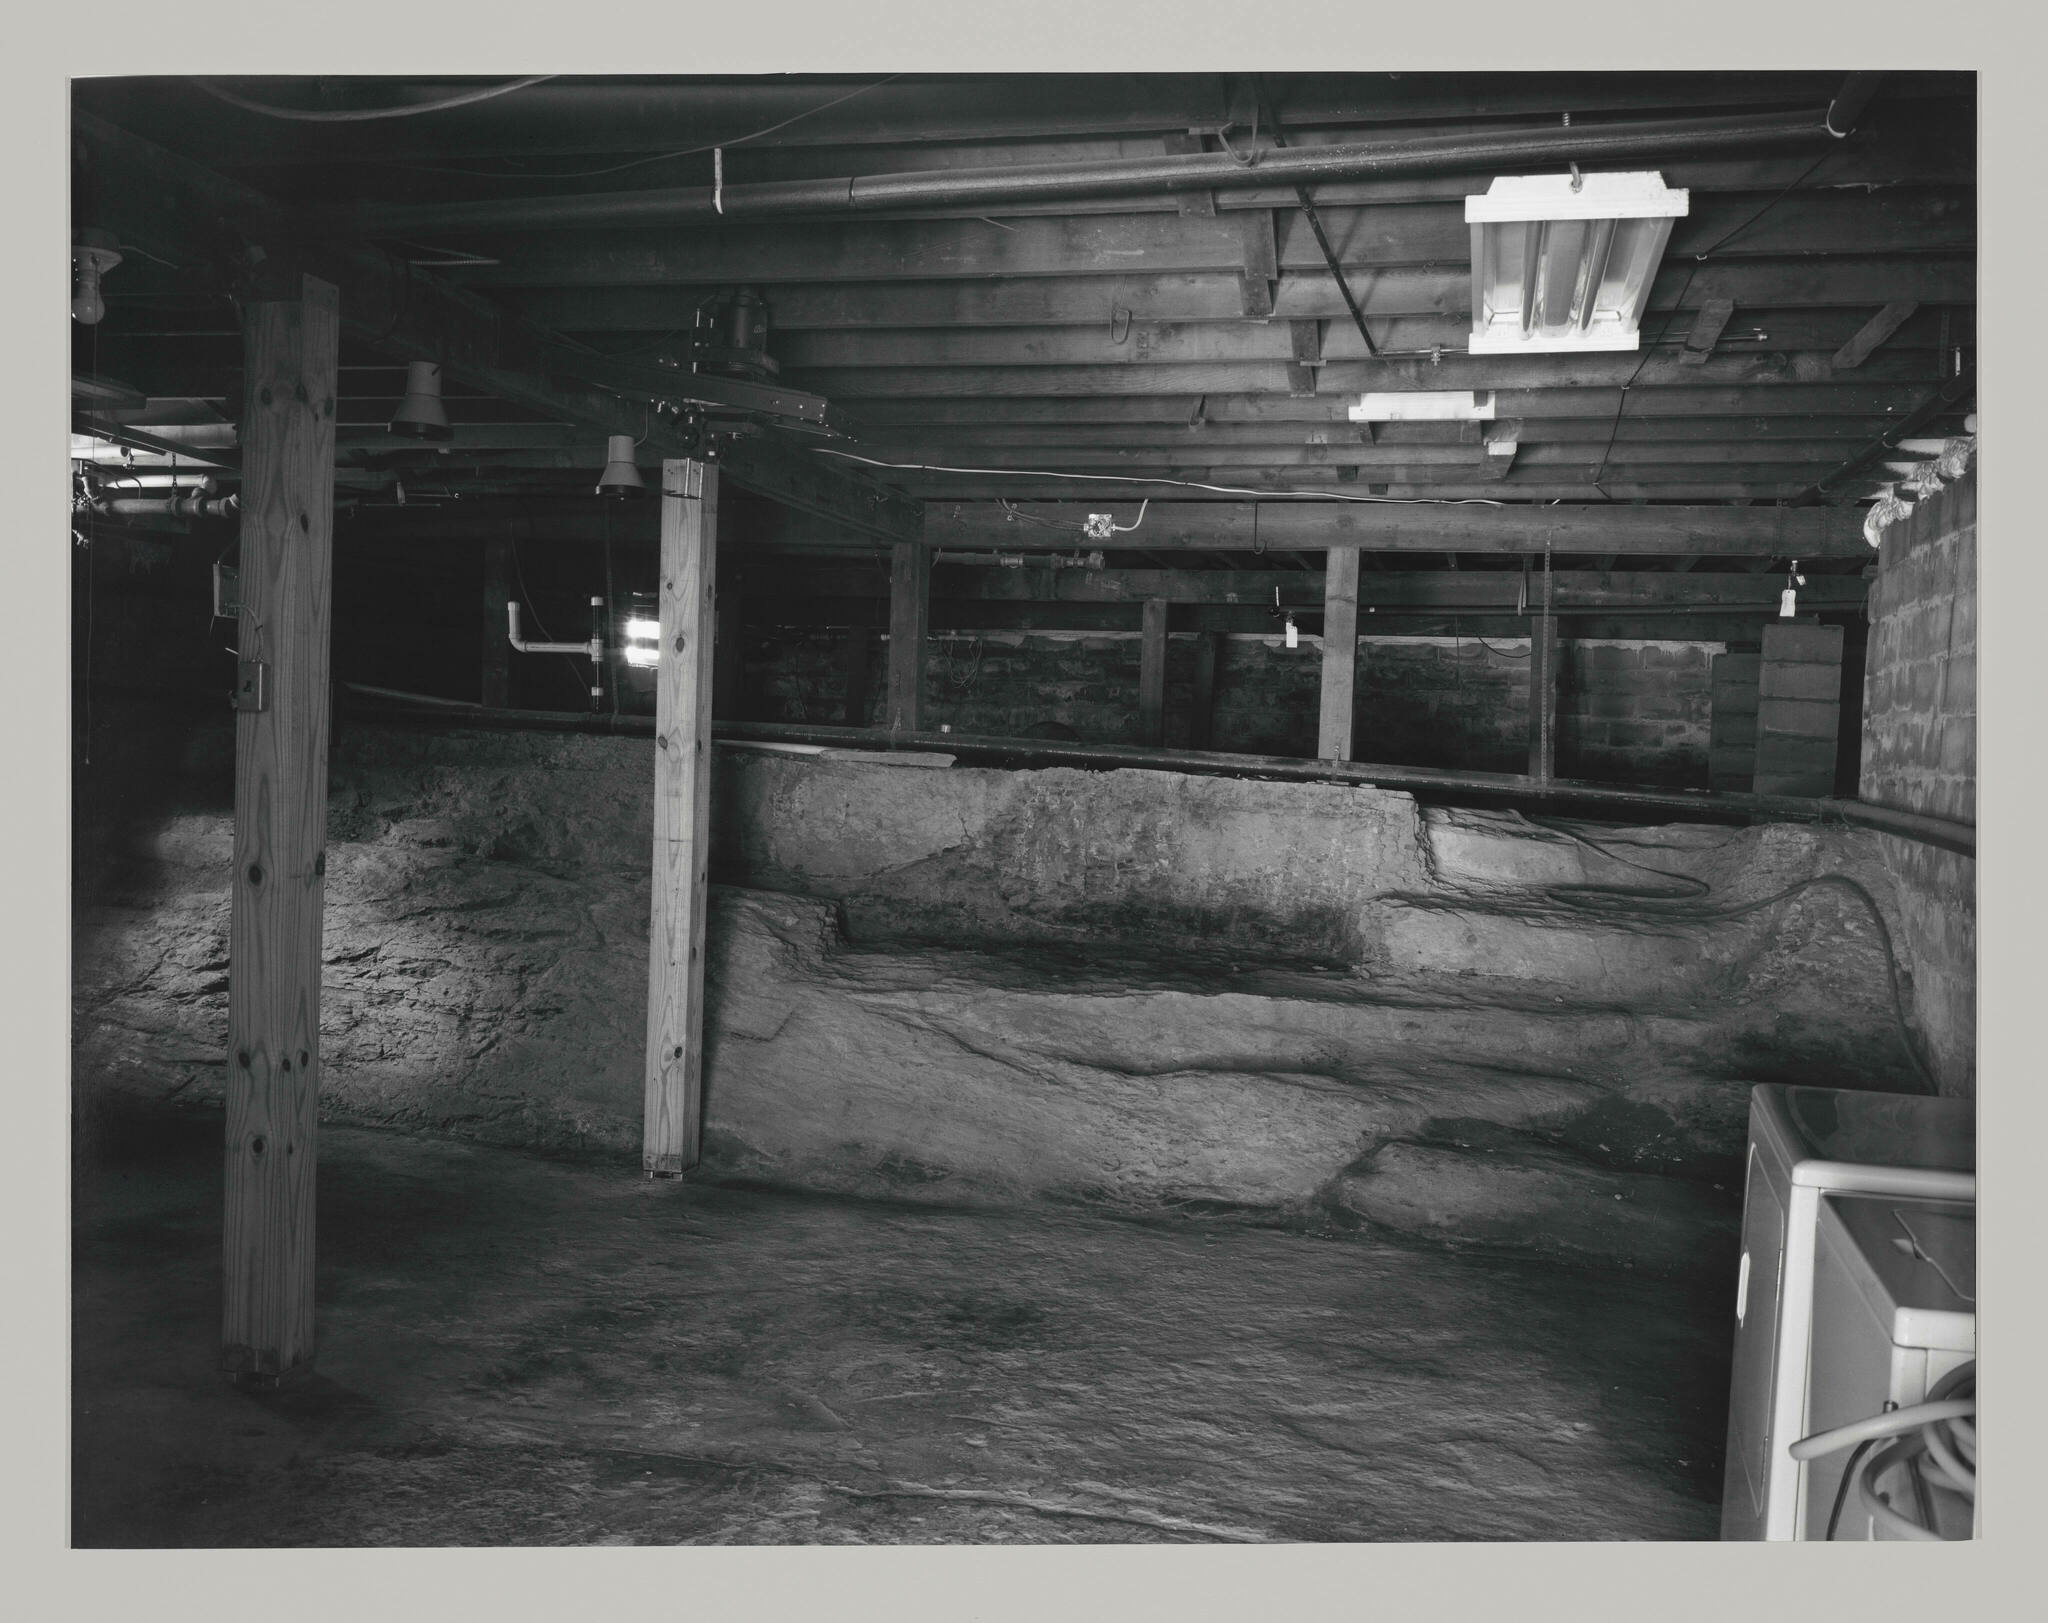 A dark empty room with a low ceiling of exposed, wooden beams and an uneven dirt floor full or slopes. A washer and dryer sit in the corner of the frame.